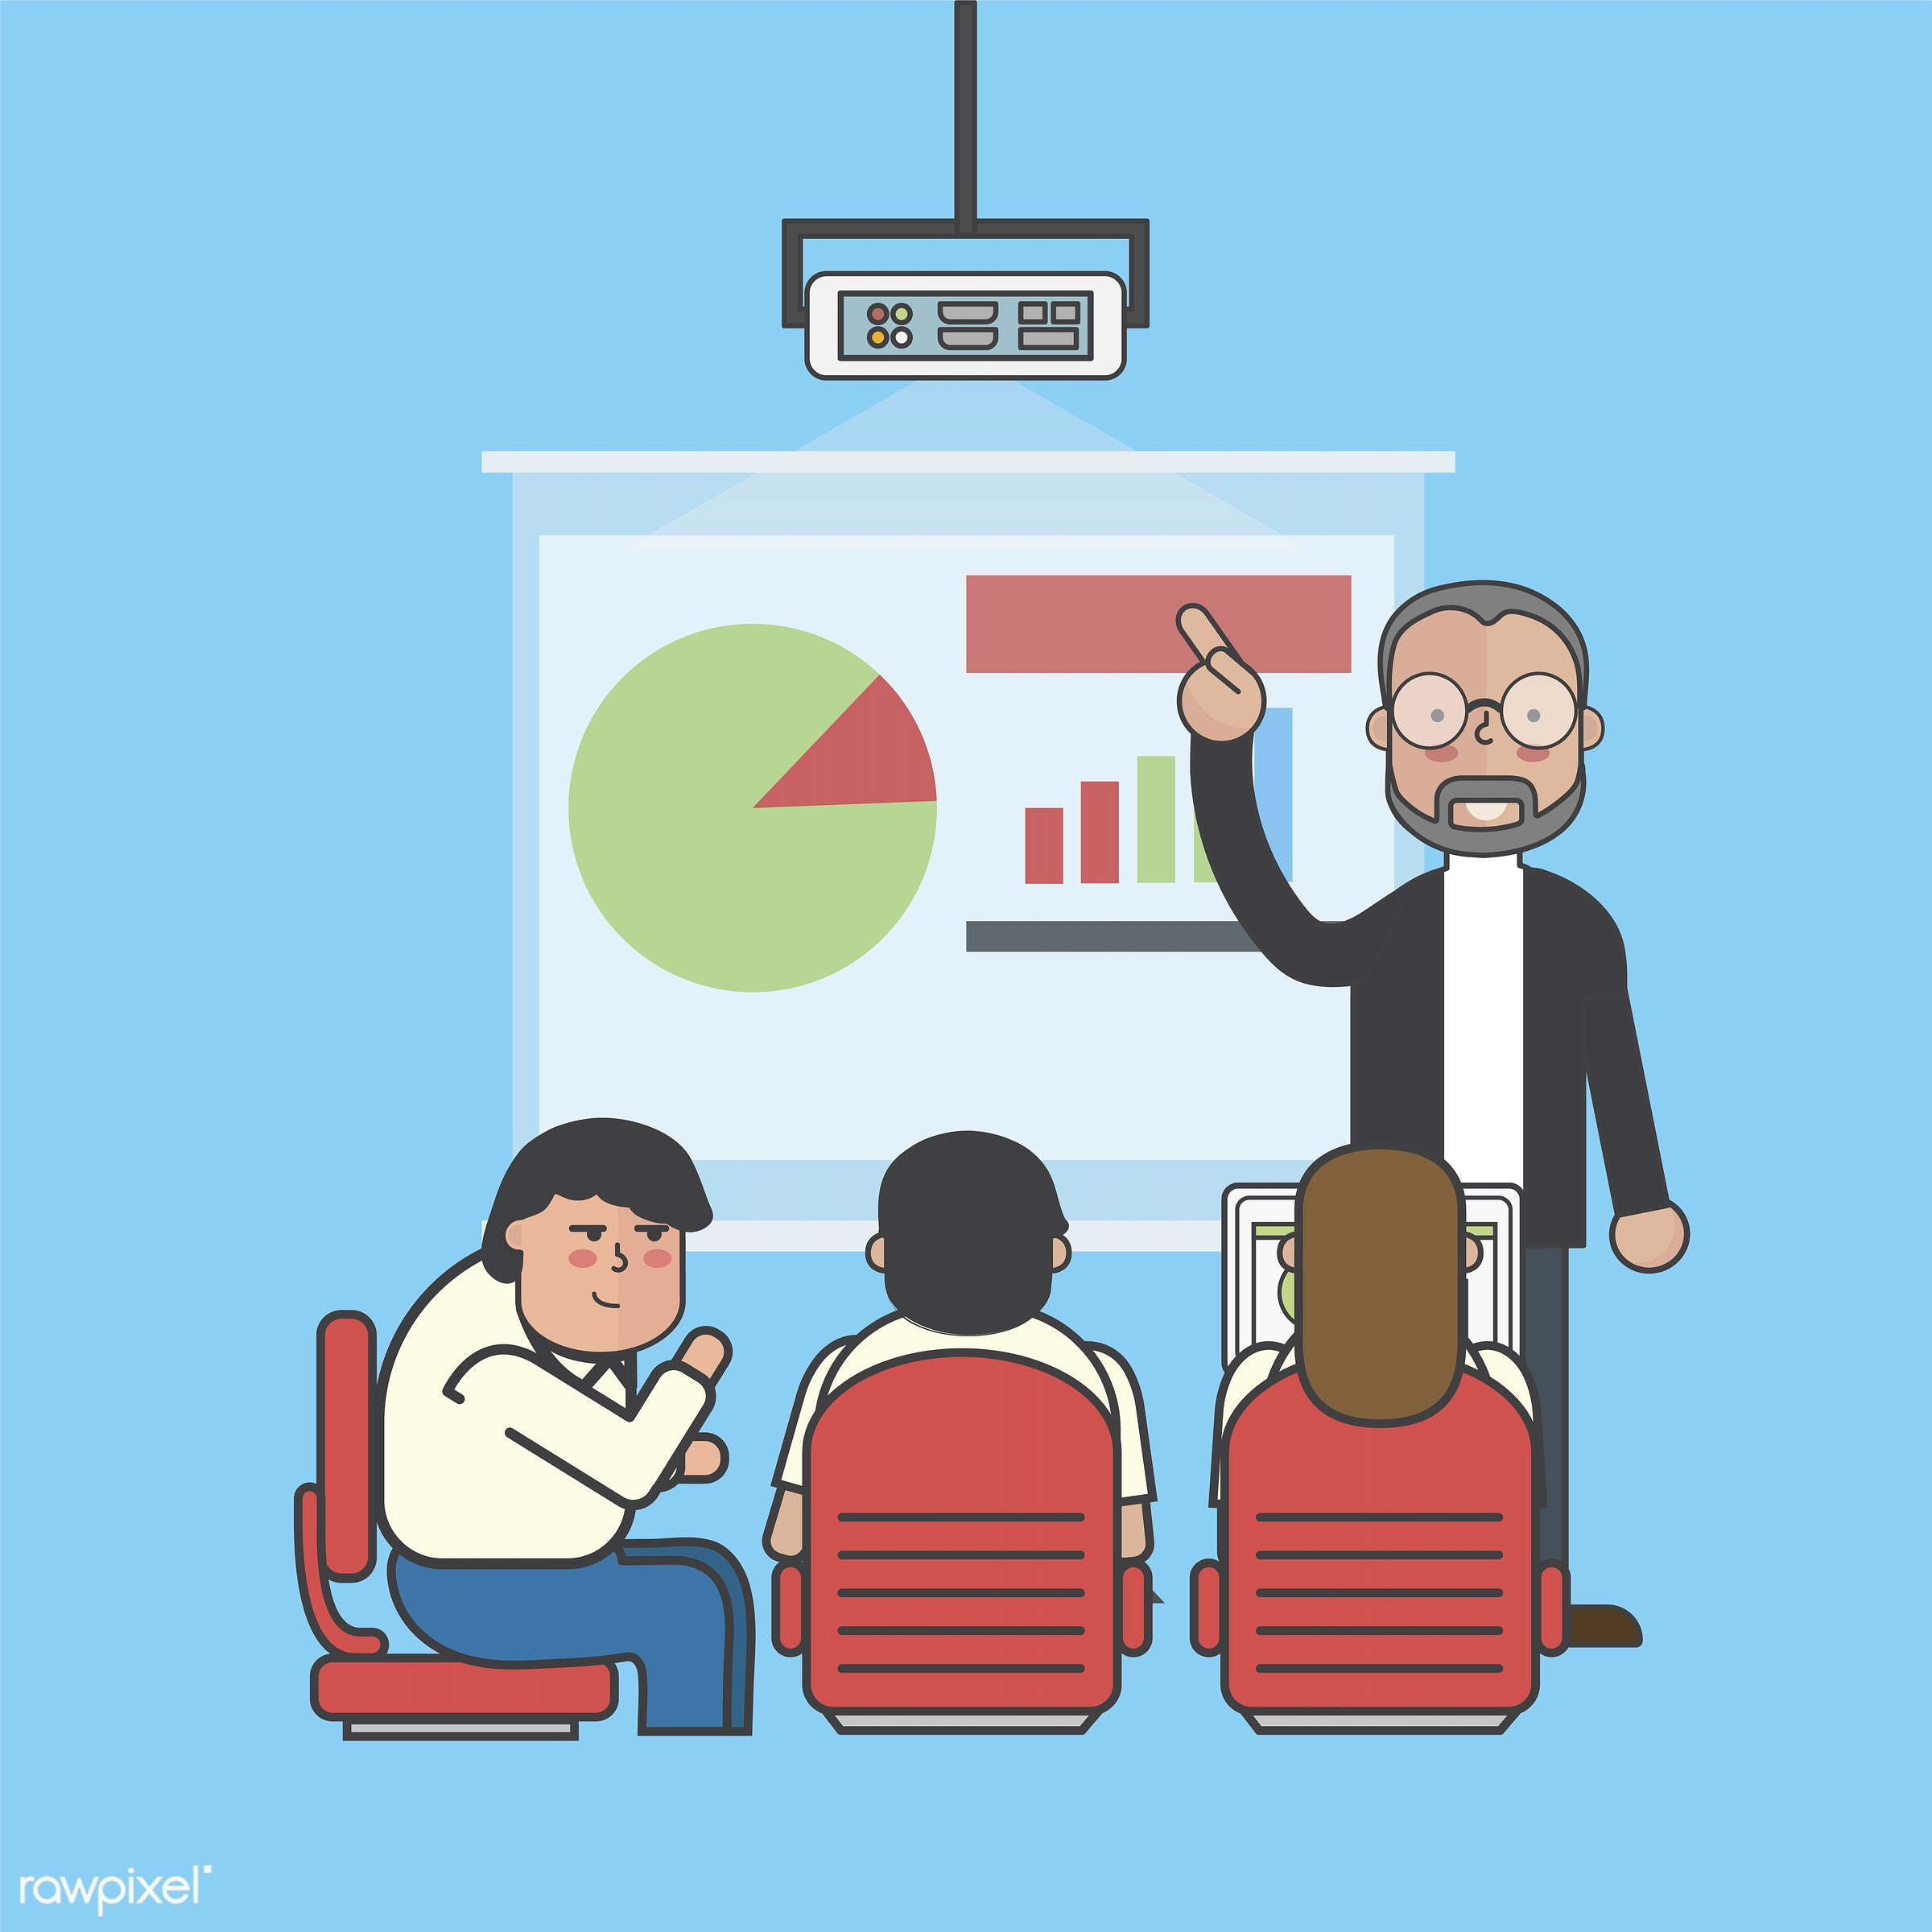 Illustration of business people avatar - analysis, artwork, avatar, business, cartoon, character, conference, corporate,...